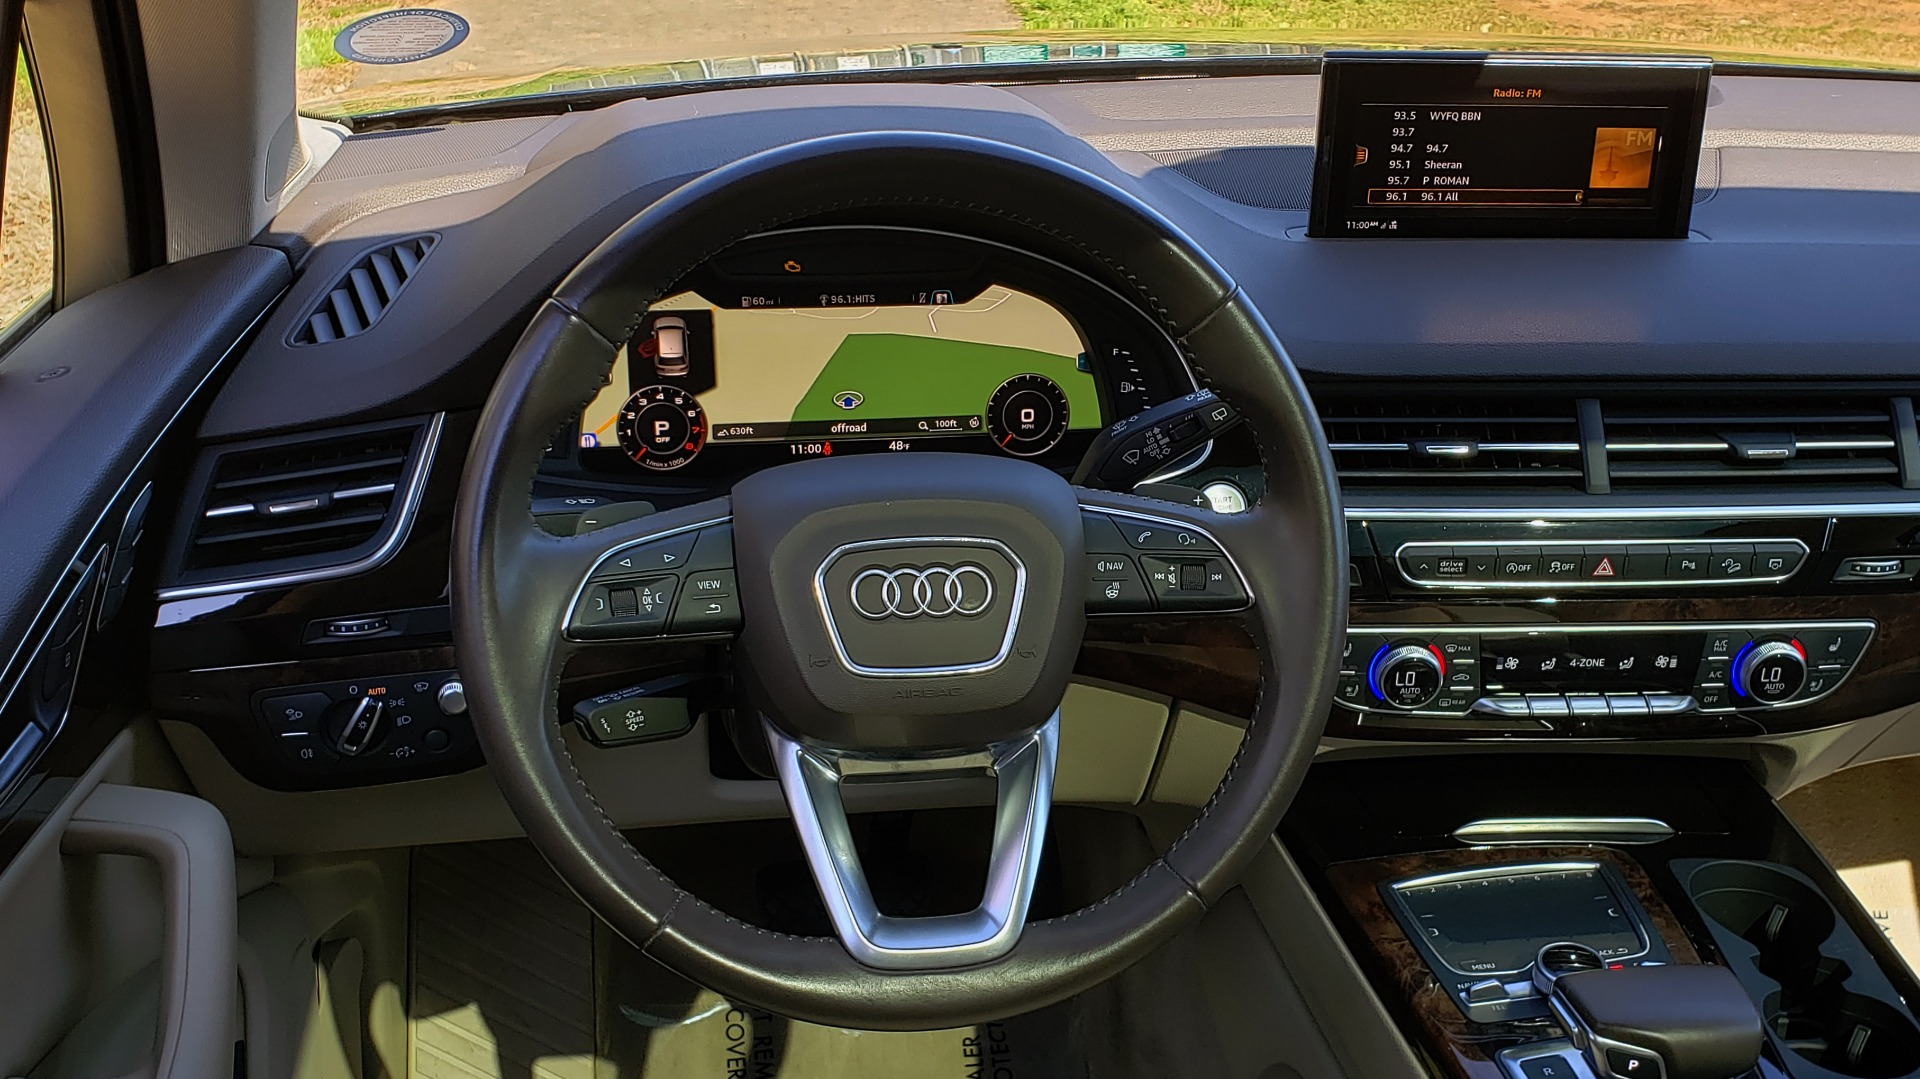 Used 2018 Audi Q7 PRESTIGE 3.0T CLD WTHR / NAV / BOSE / HEADS-UP / REARVIEW for sale Sold at Formula Imports in Charlotte NC 28227 38